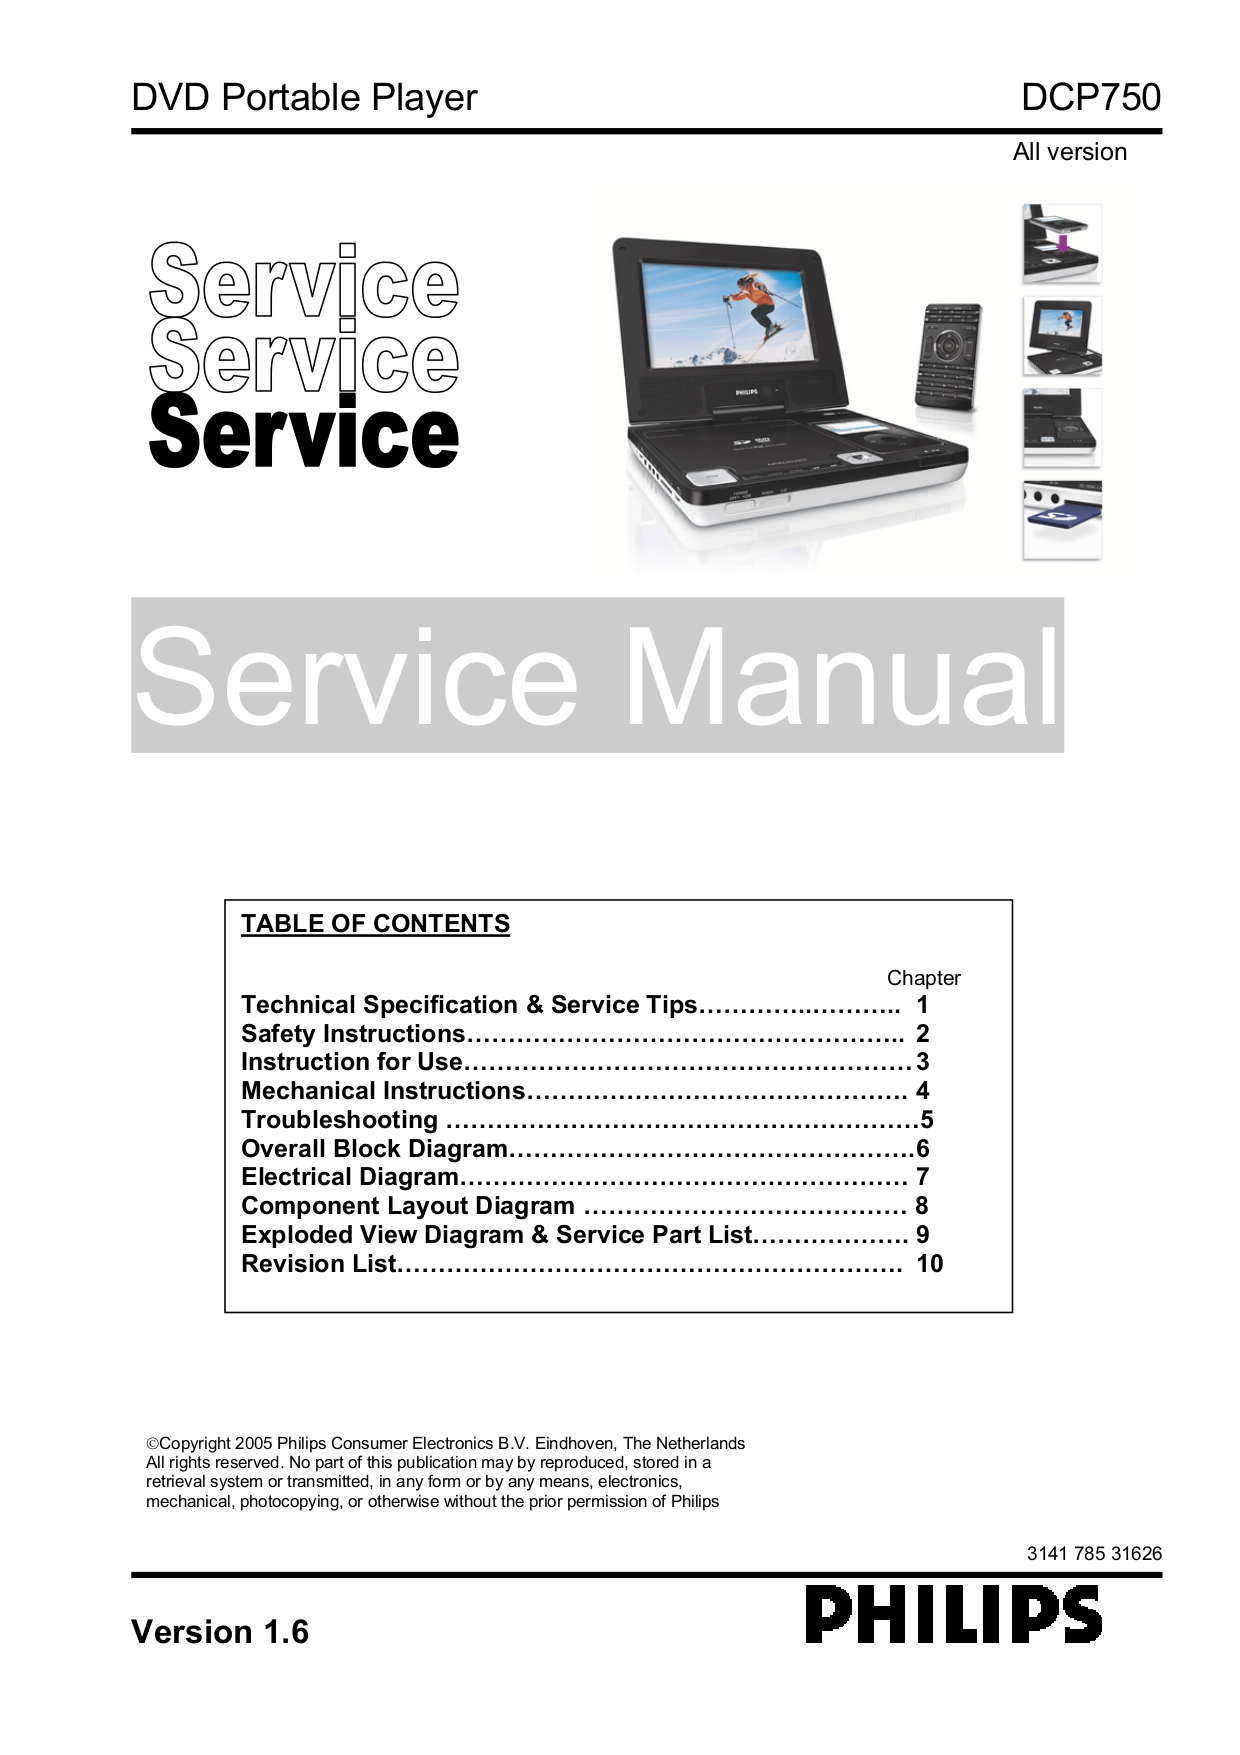 Download free pdf for philips dcp750 portable dvd player manual.